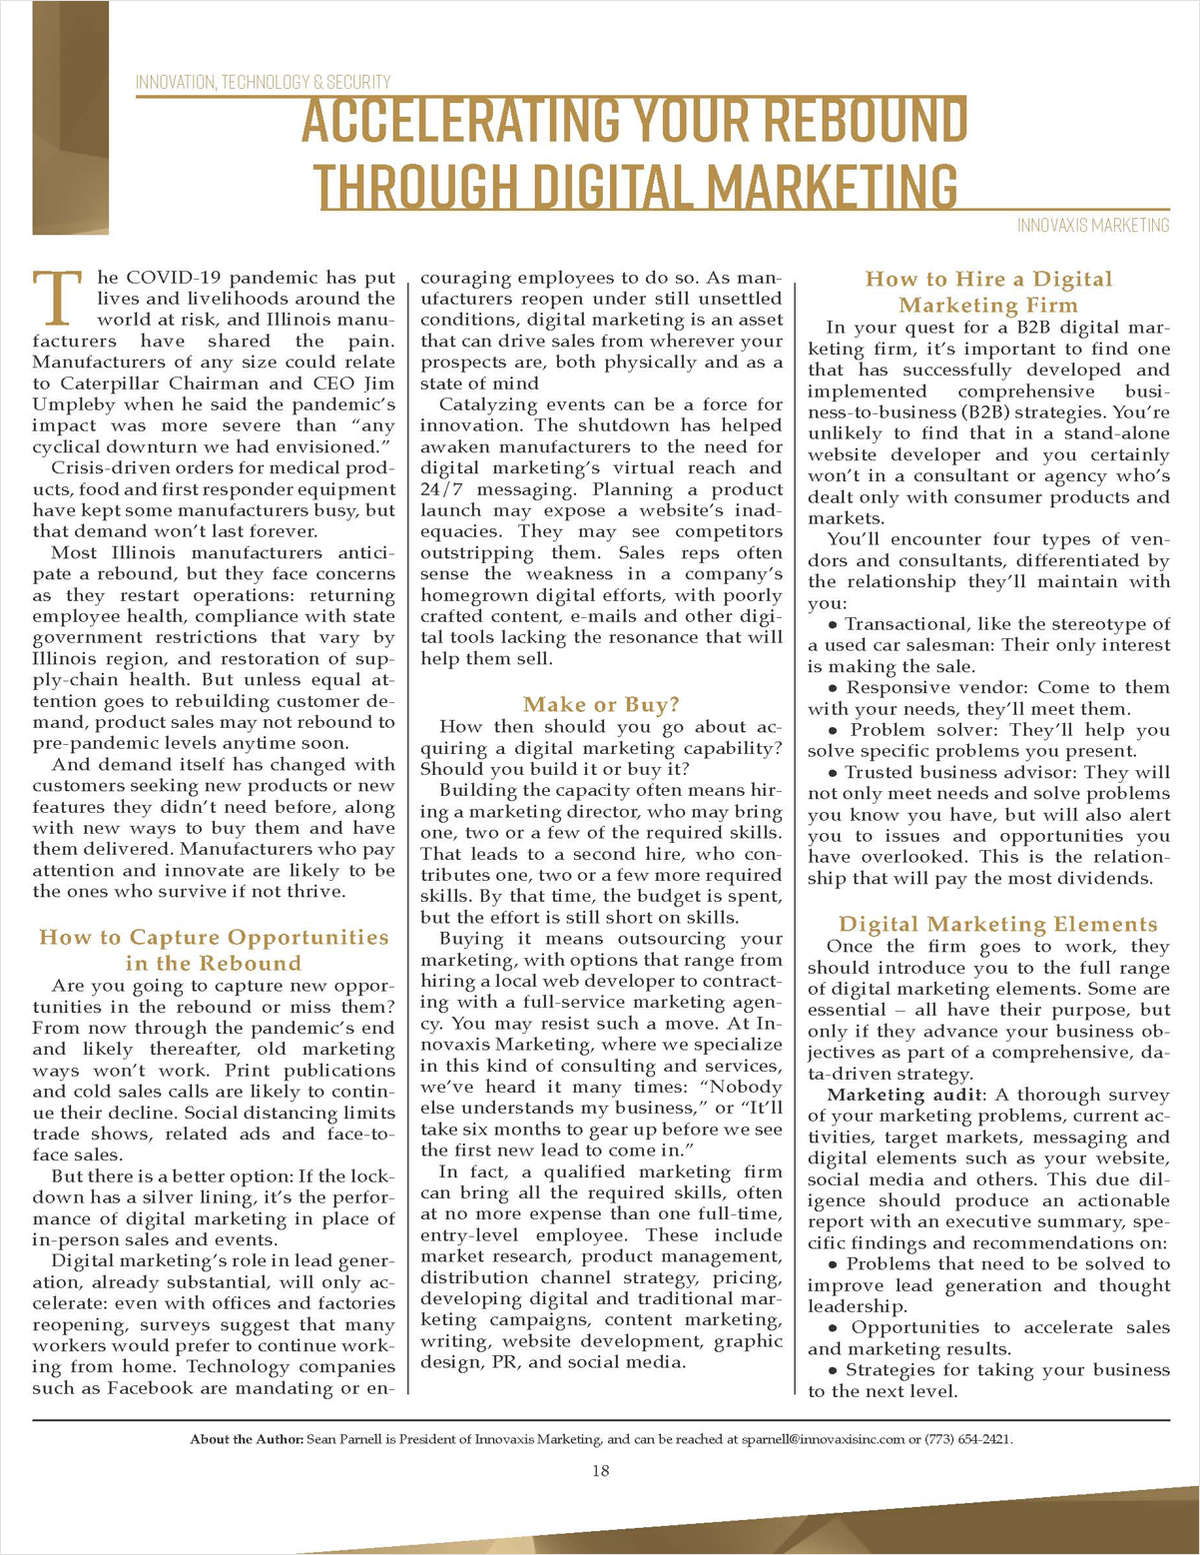 Manufacturers: Accelerate Your Rebound with Digital Marketing